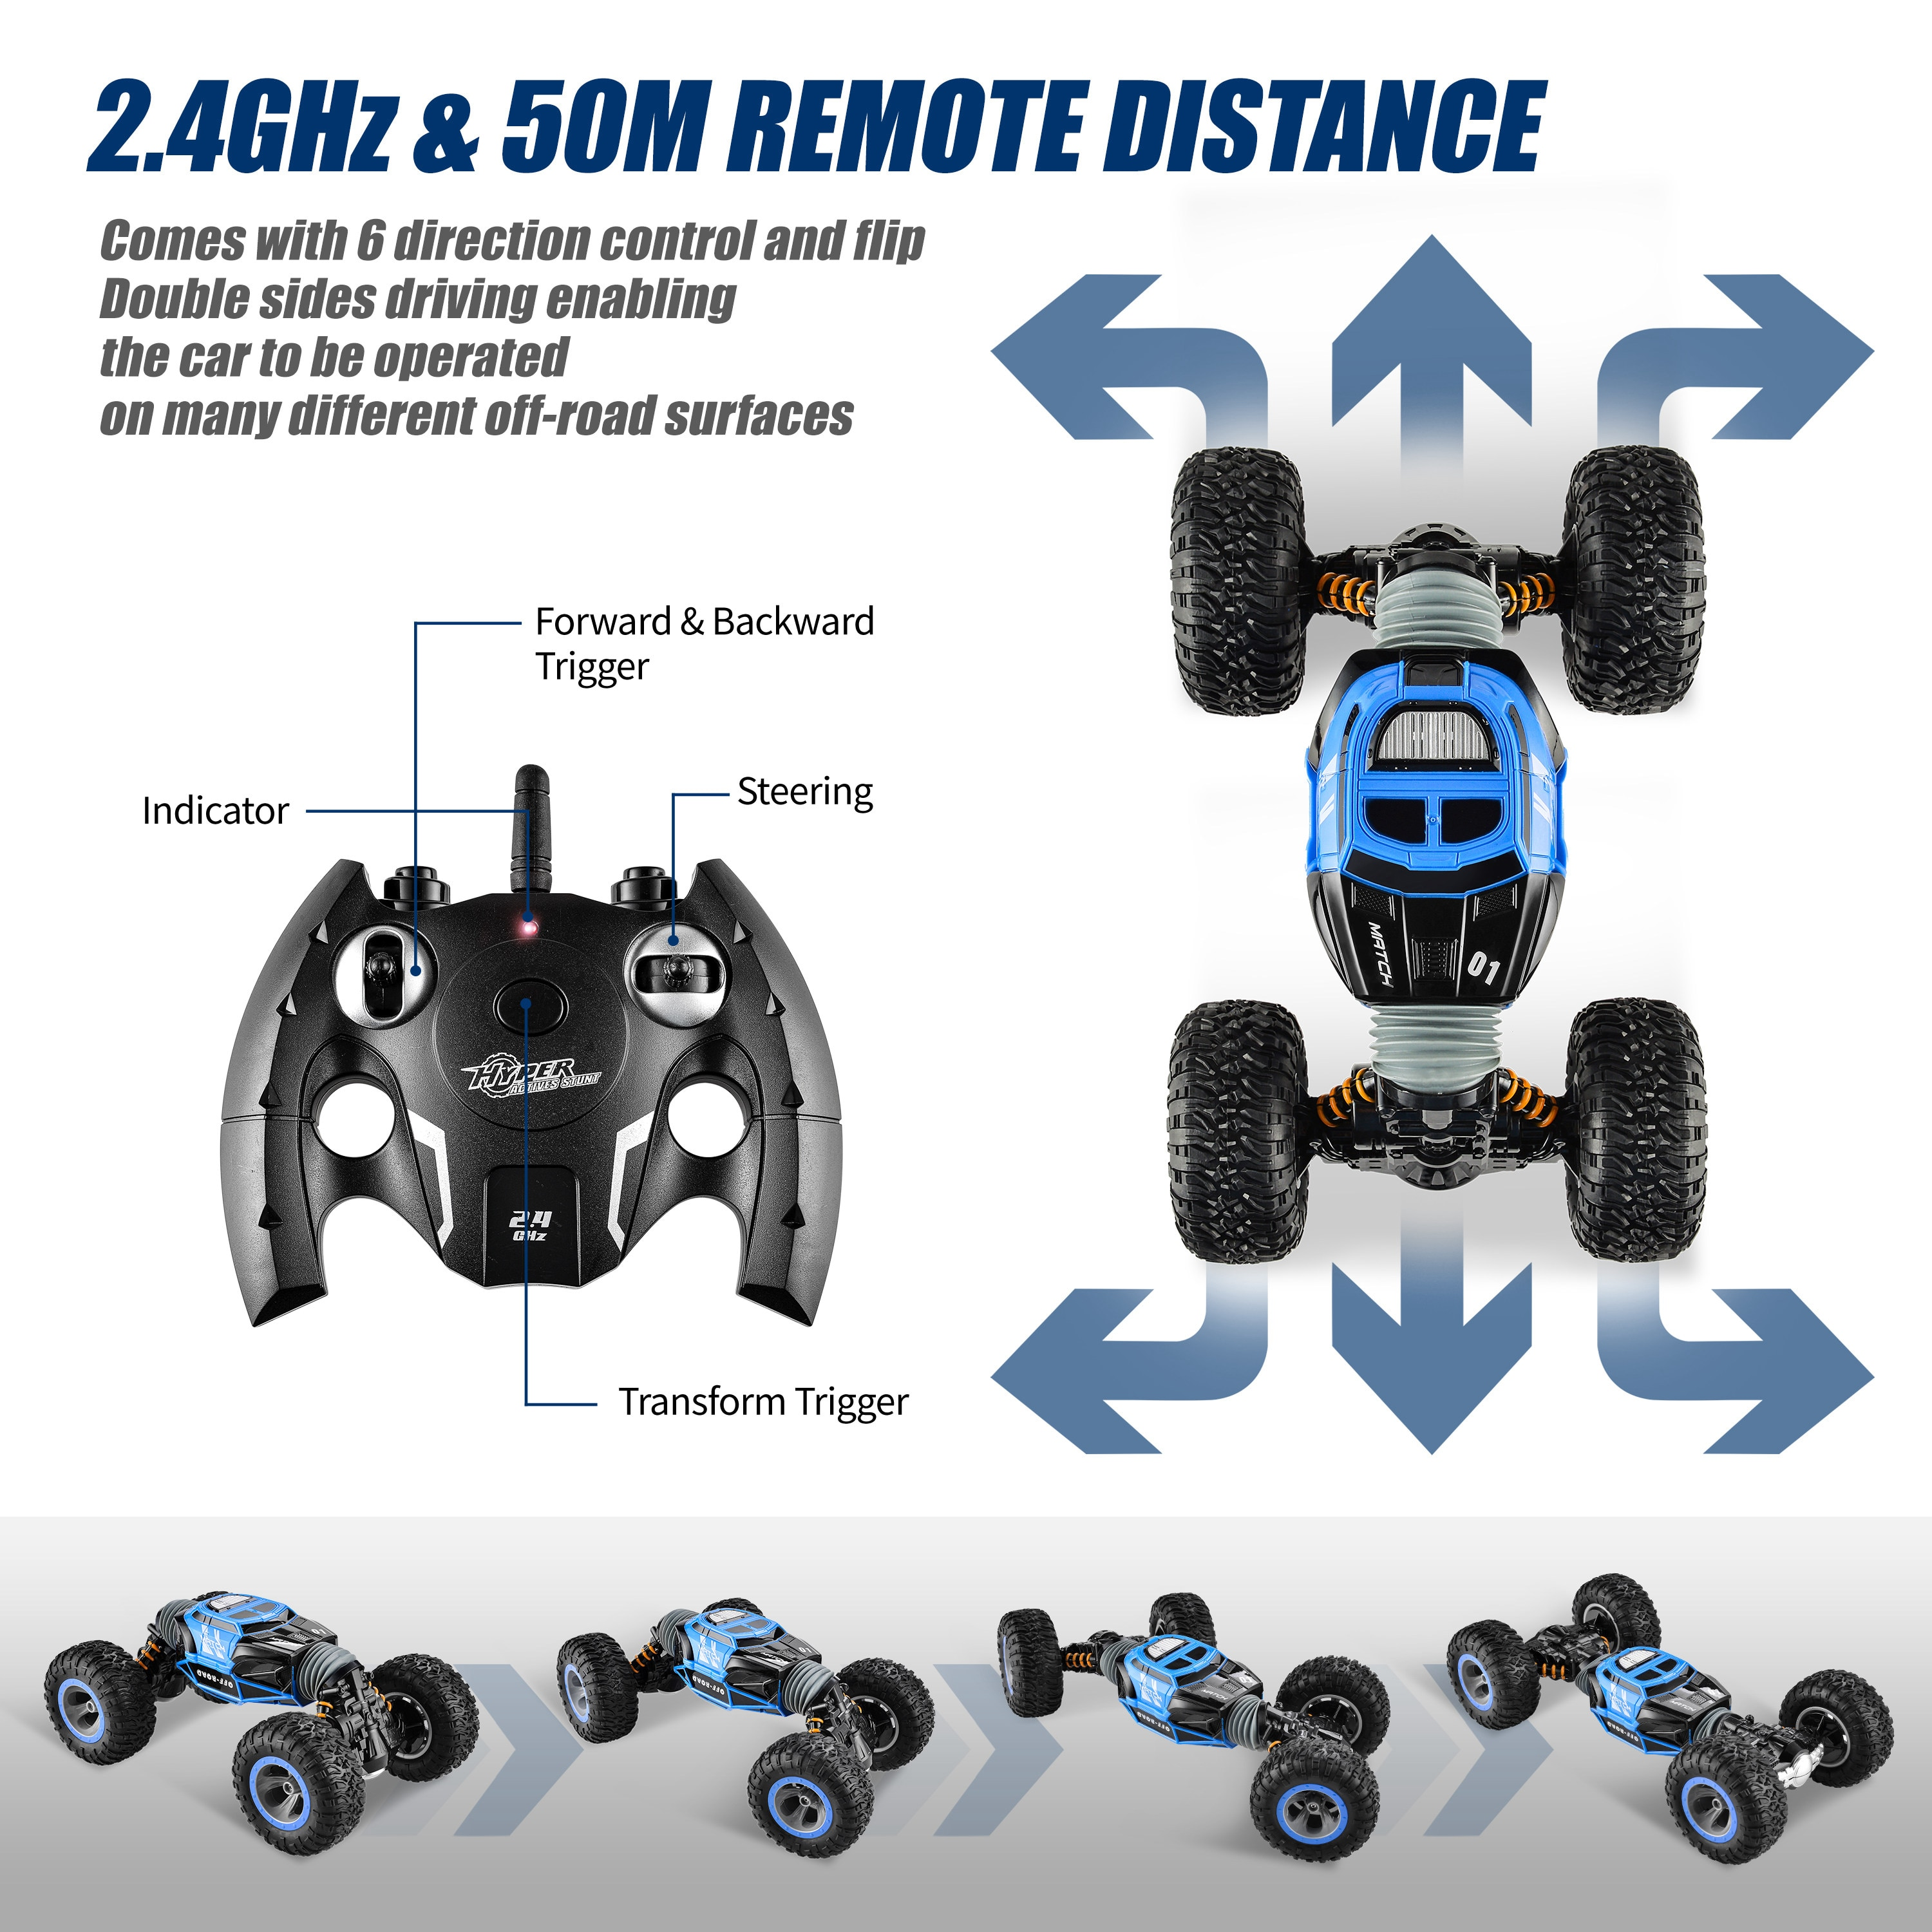 BEZGAR TD141 Remote Control Crawler,1:14 All-Terrain 2.4GHz 15Km/h Transform 4WD RC Stunt Car Truck Toy with Battery for kids enlarge